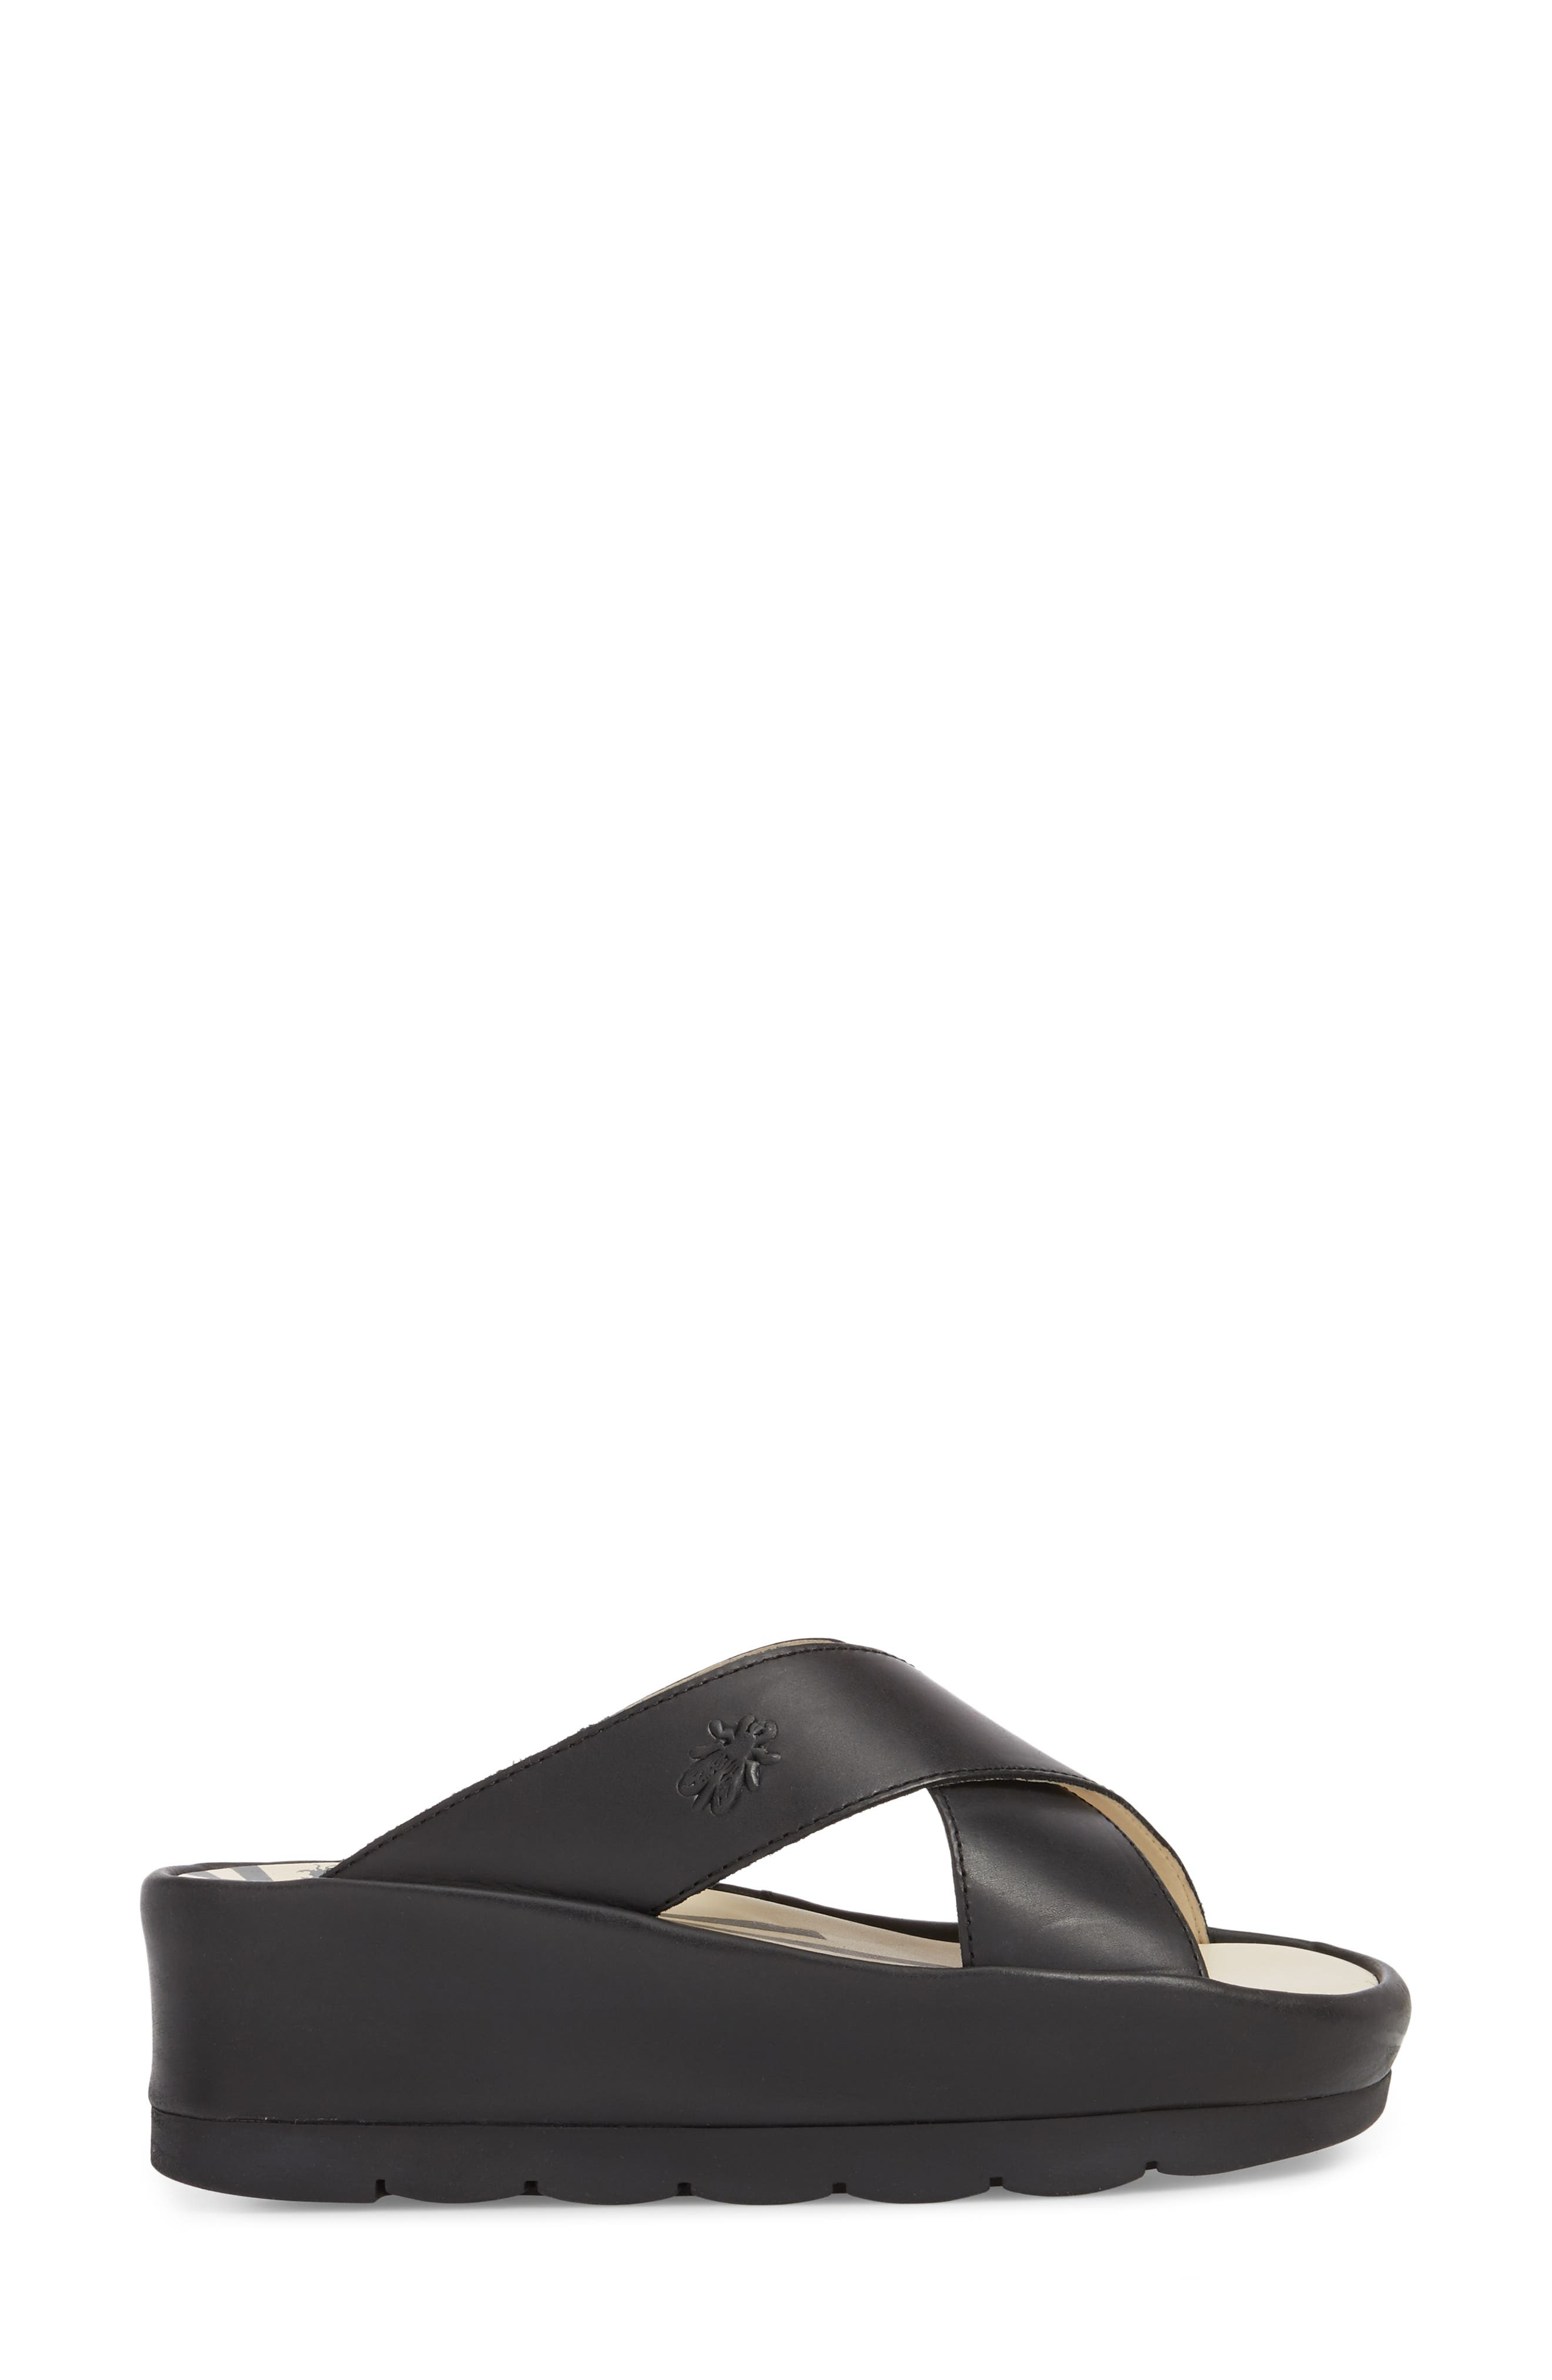 Begs Platform Slide Sandal,                             Alternate thumbnail 3, color,                             BLACK RUG LEATHER